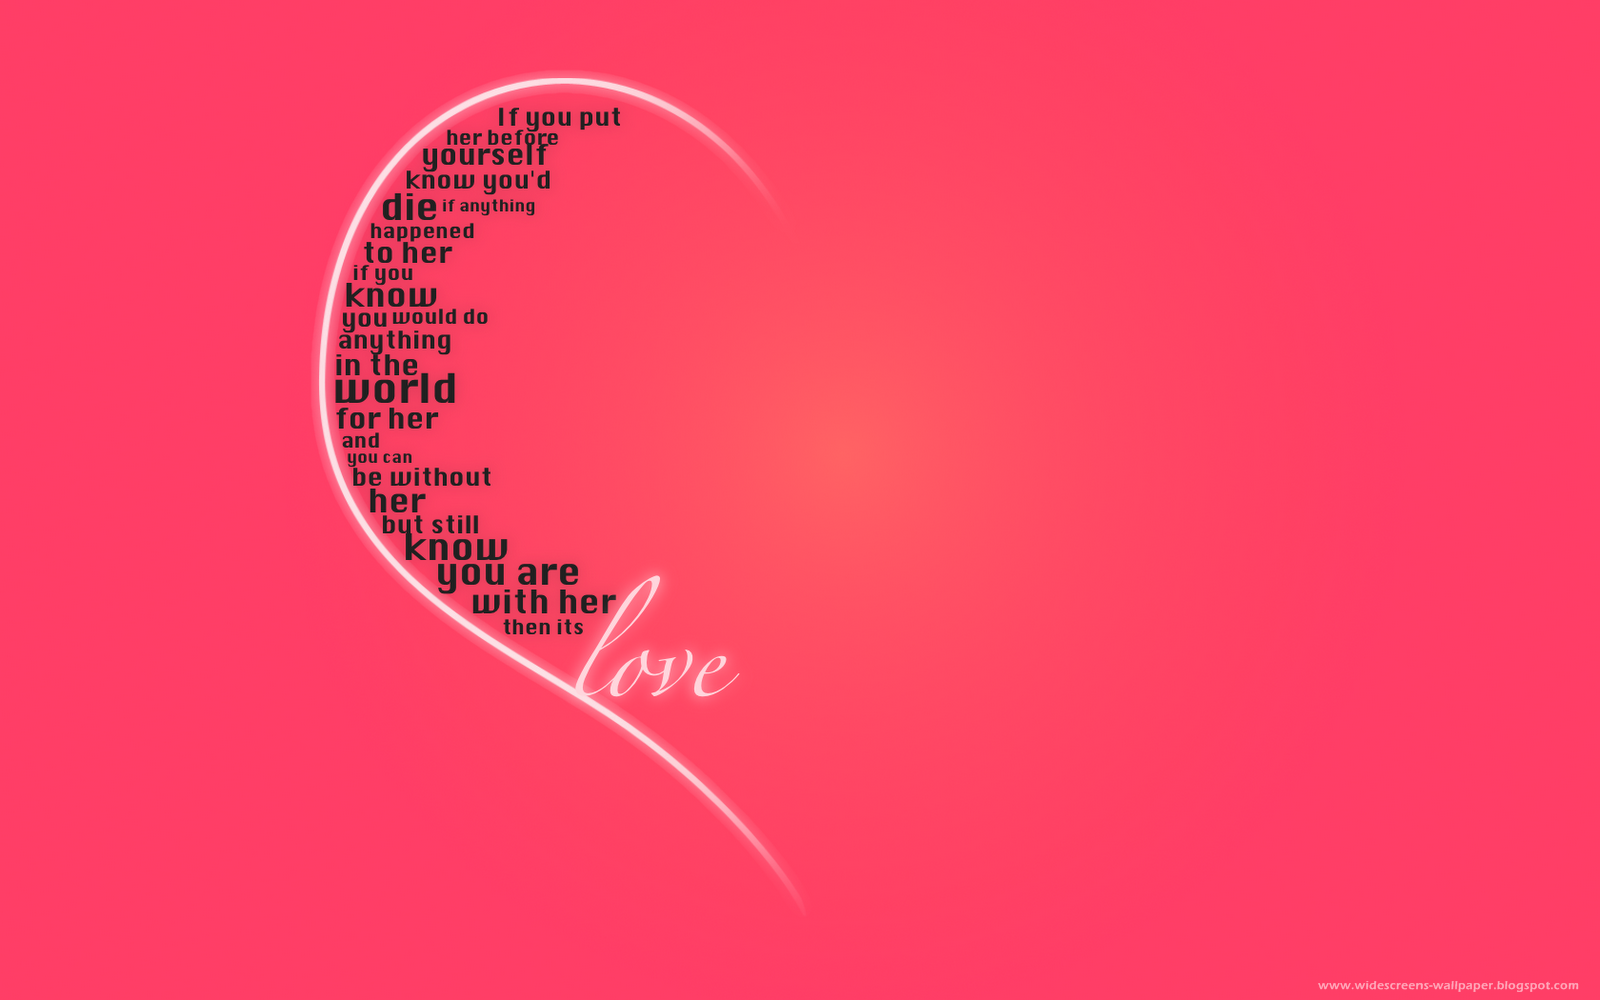 Romantic Love Quotes Wallpaper Hd : Wallpaper collection For Your computer and Mobile Phones: New Romantic Love Words And Quotations ...